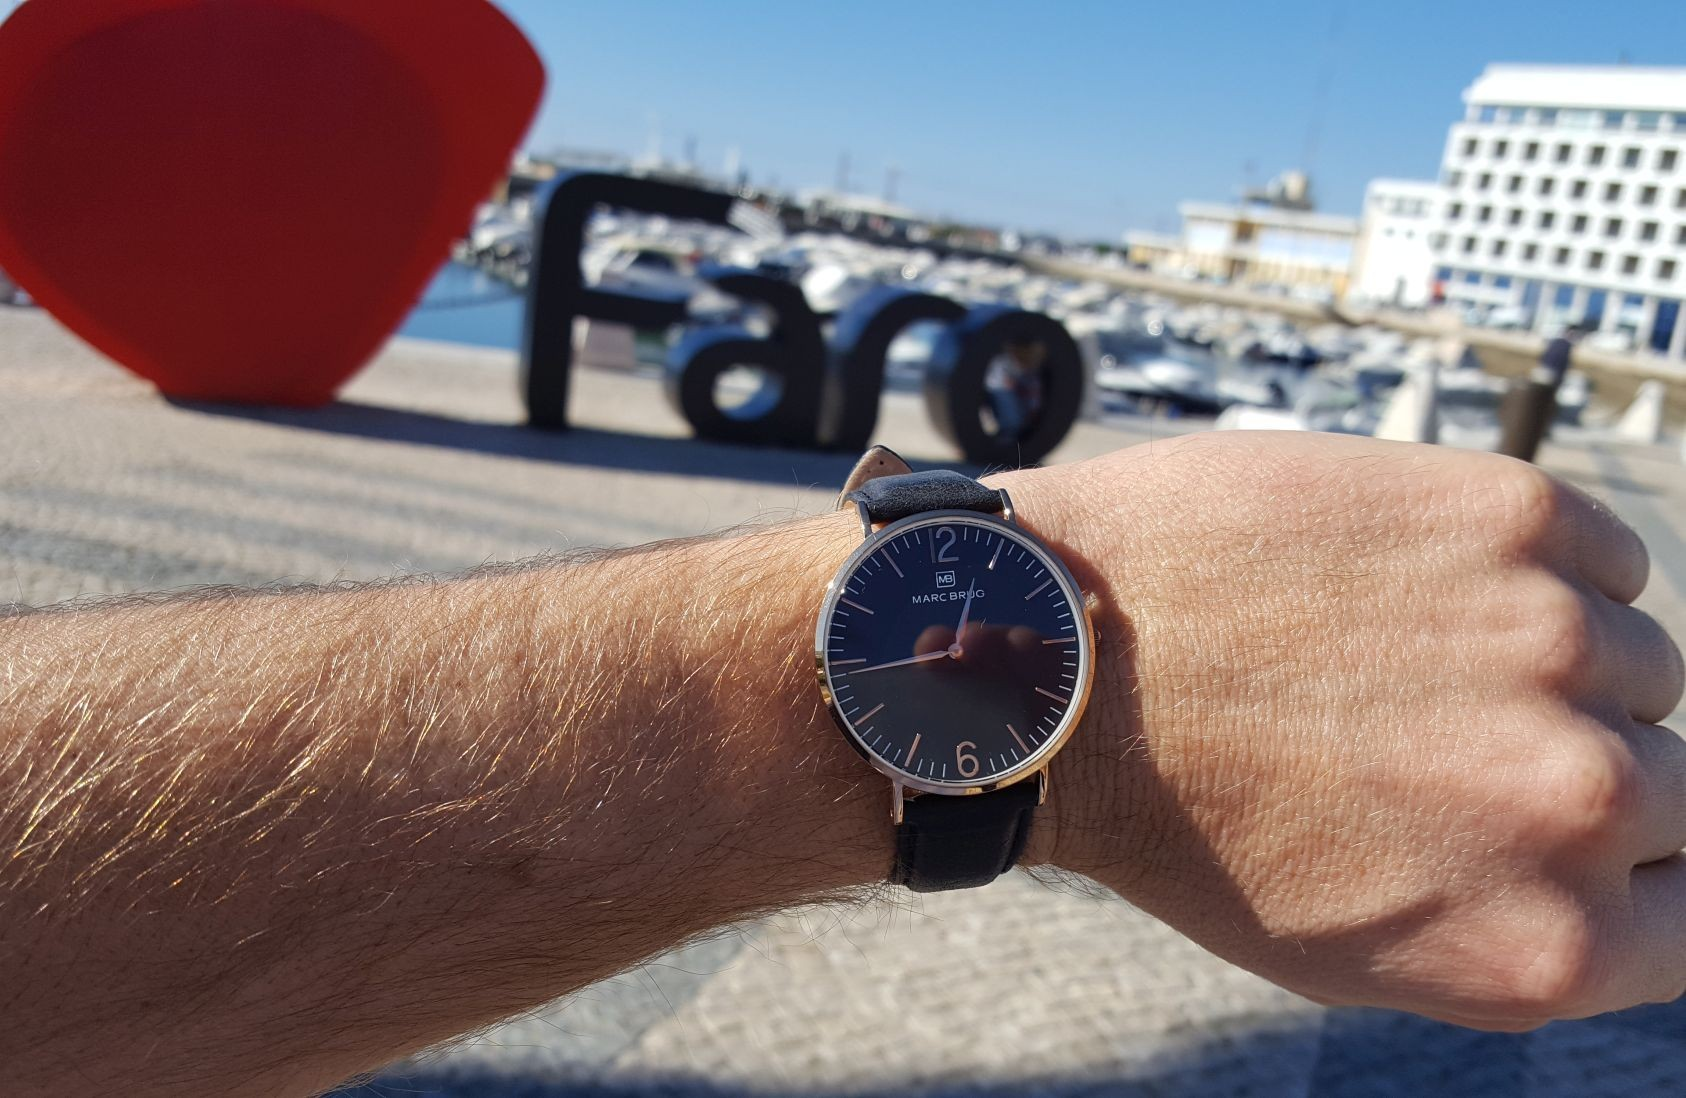 Marc Brüg Watches in Faro